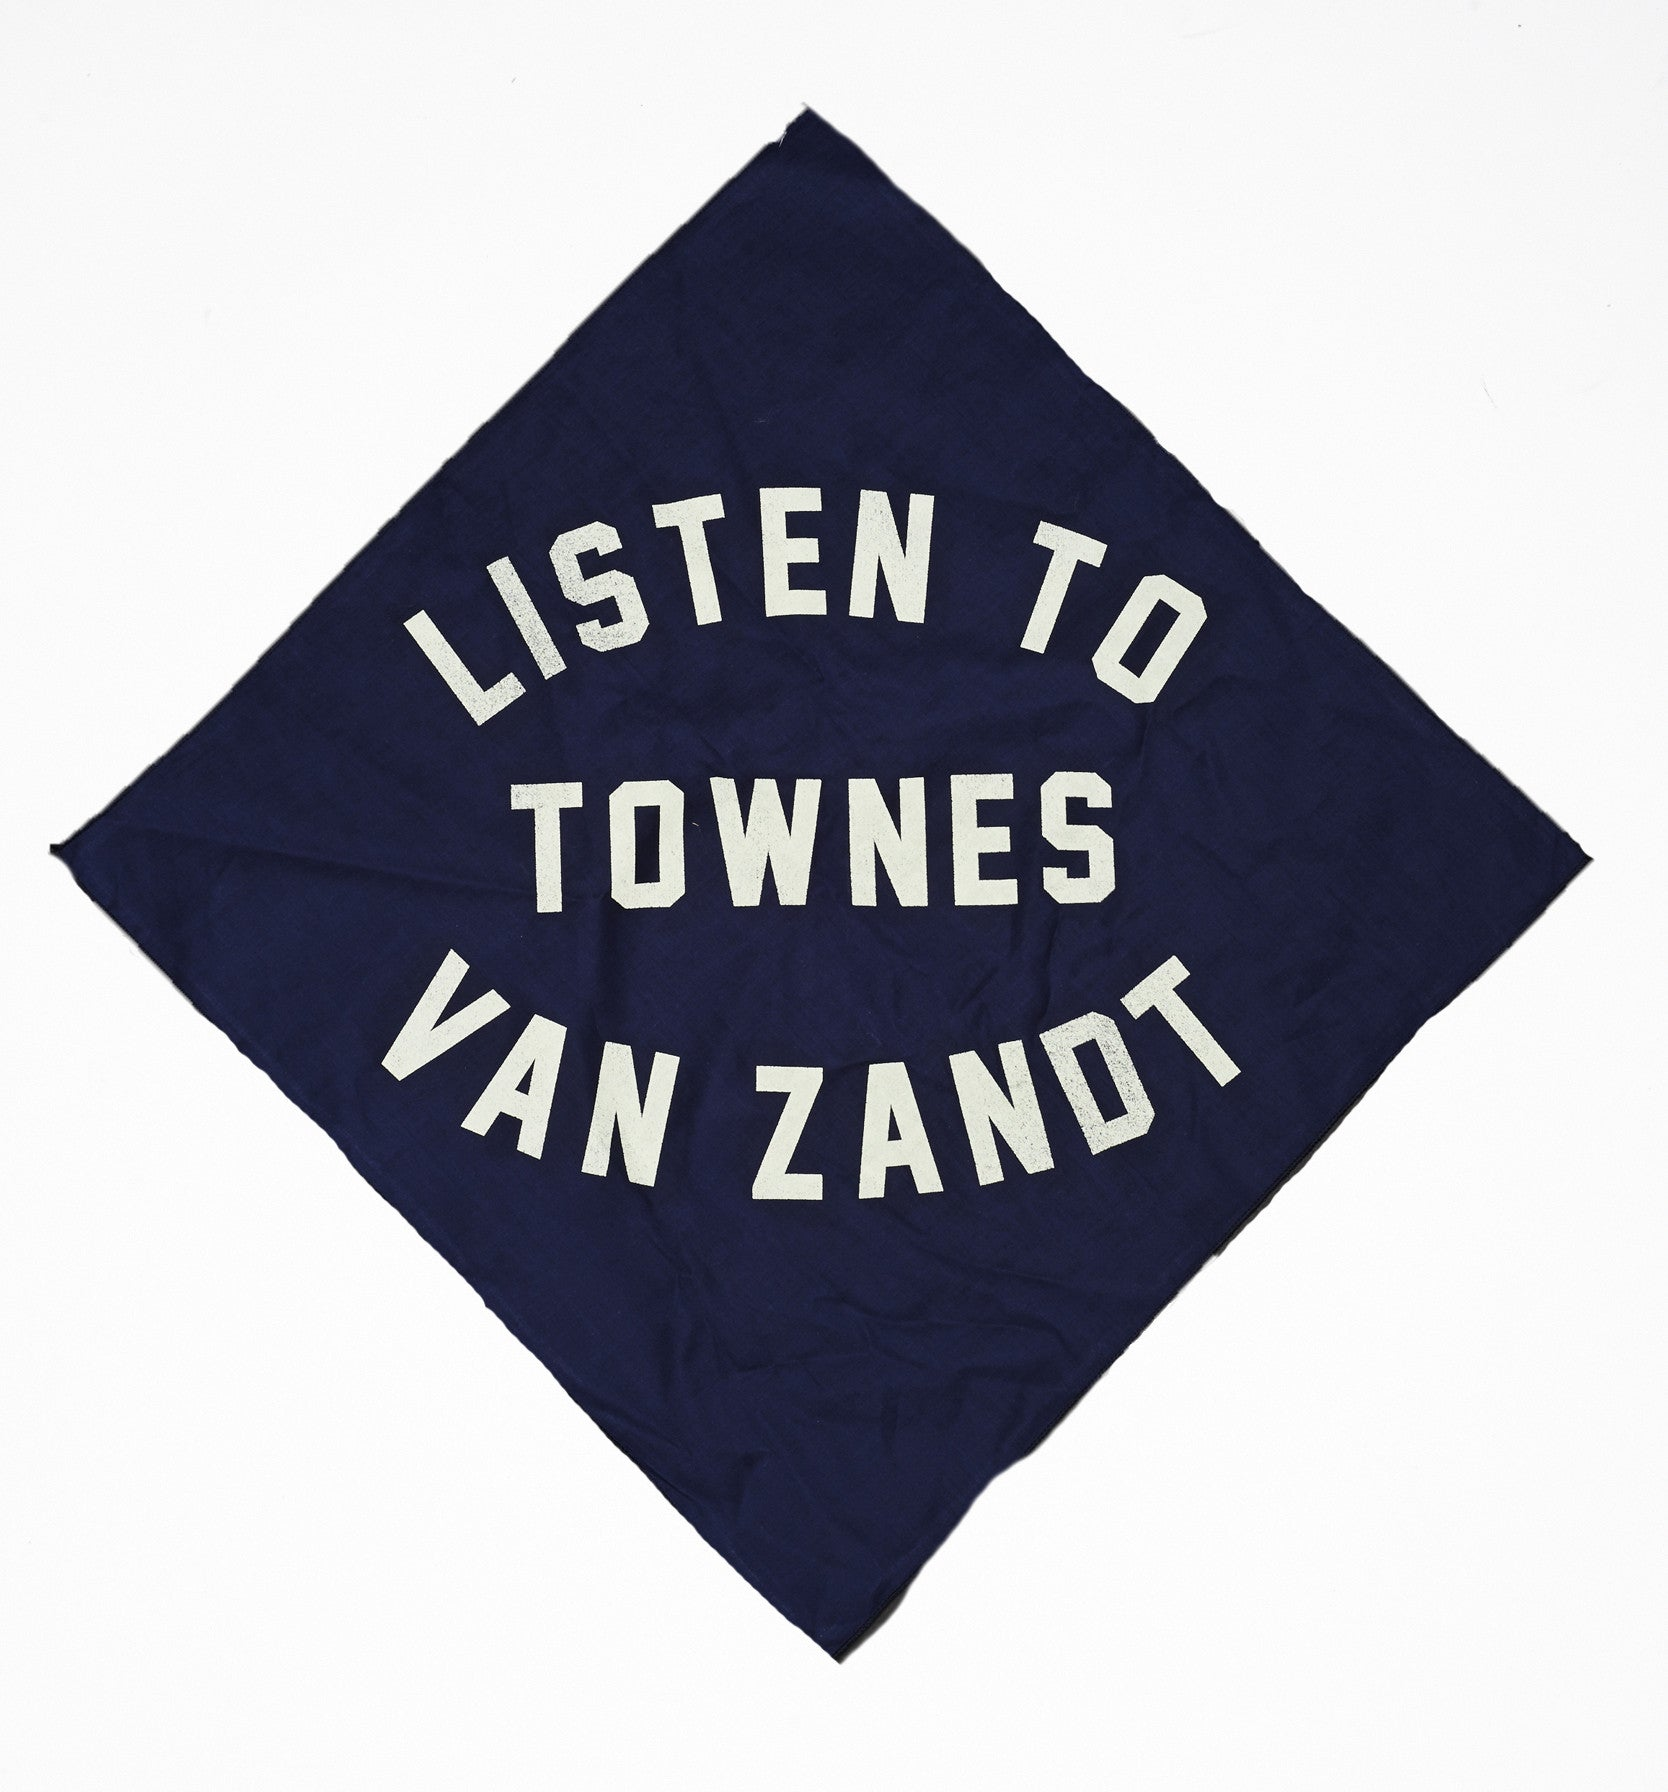 Listen to Townes Van Zandt Bandana - Accessories - Midnight Rider